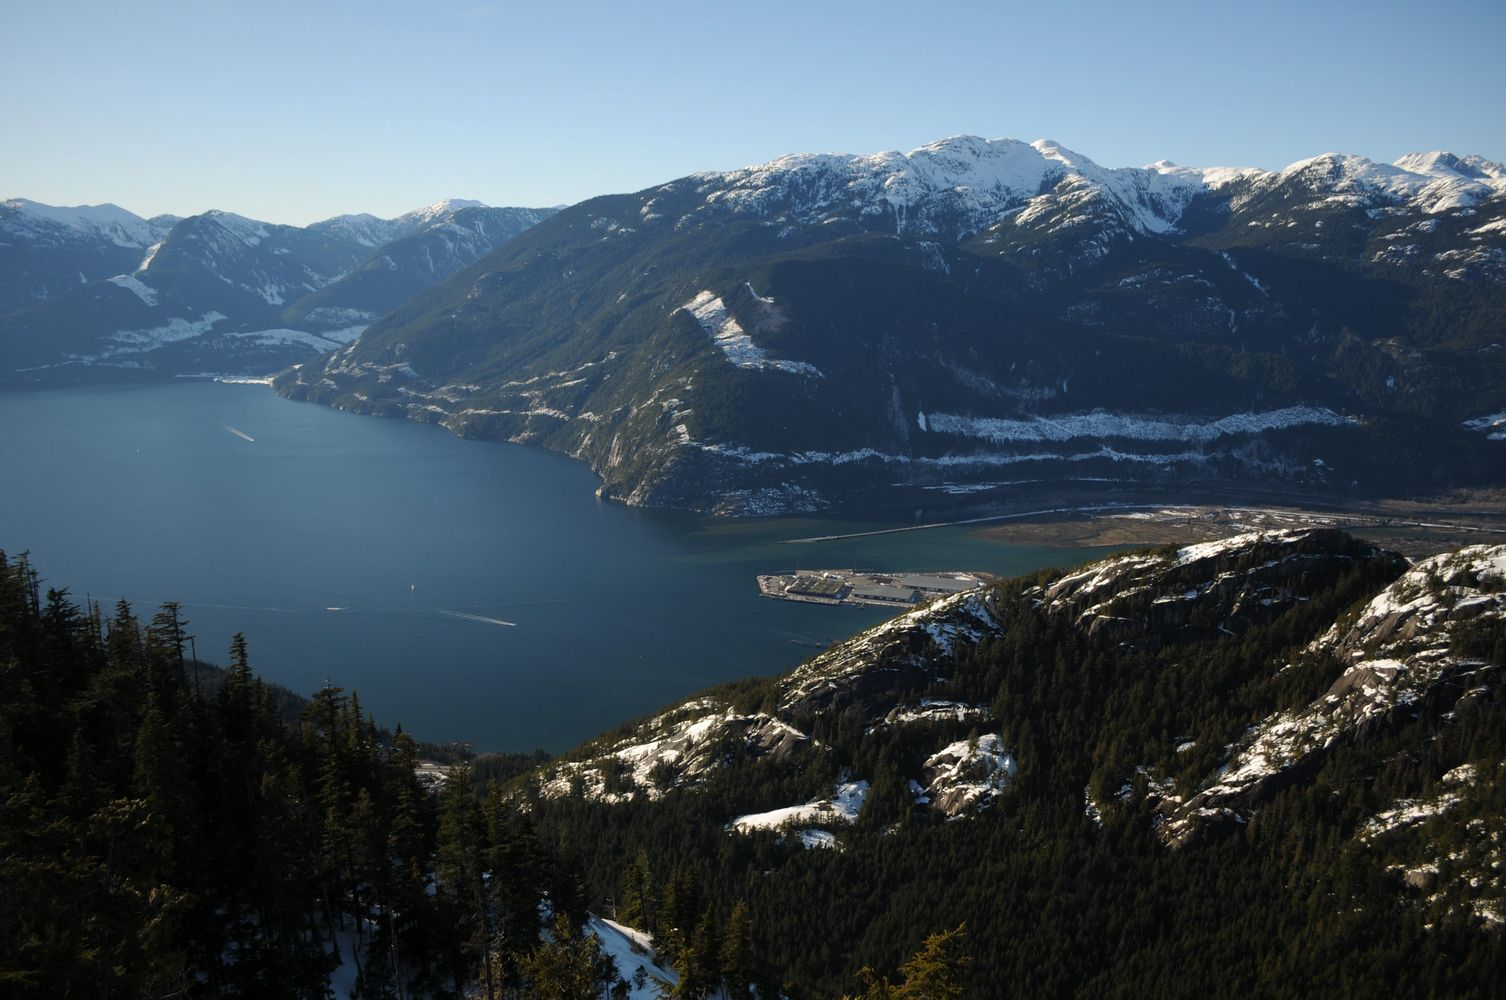 Squamish BC, from the Sea to Sky Gondola. Photo by Jack McKague